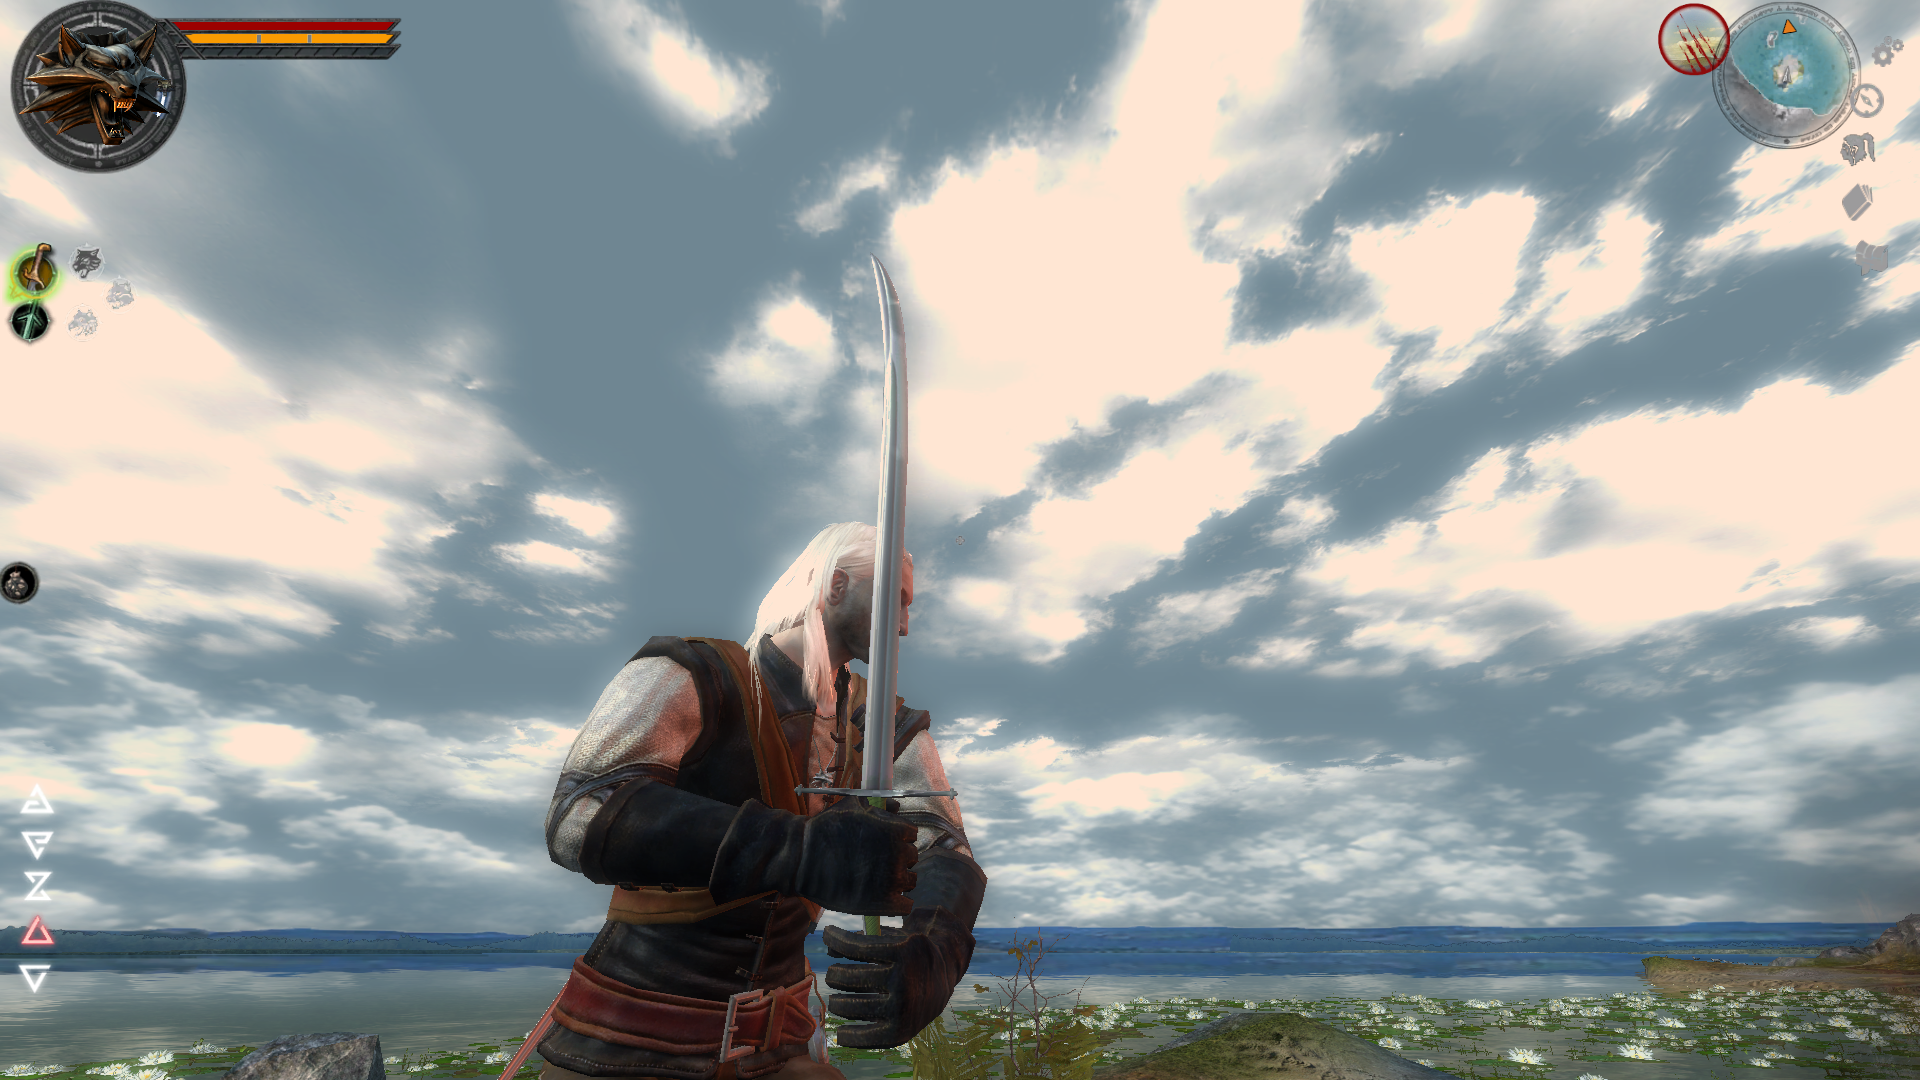 witcher_2020_10_11_23_30_05_413.png